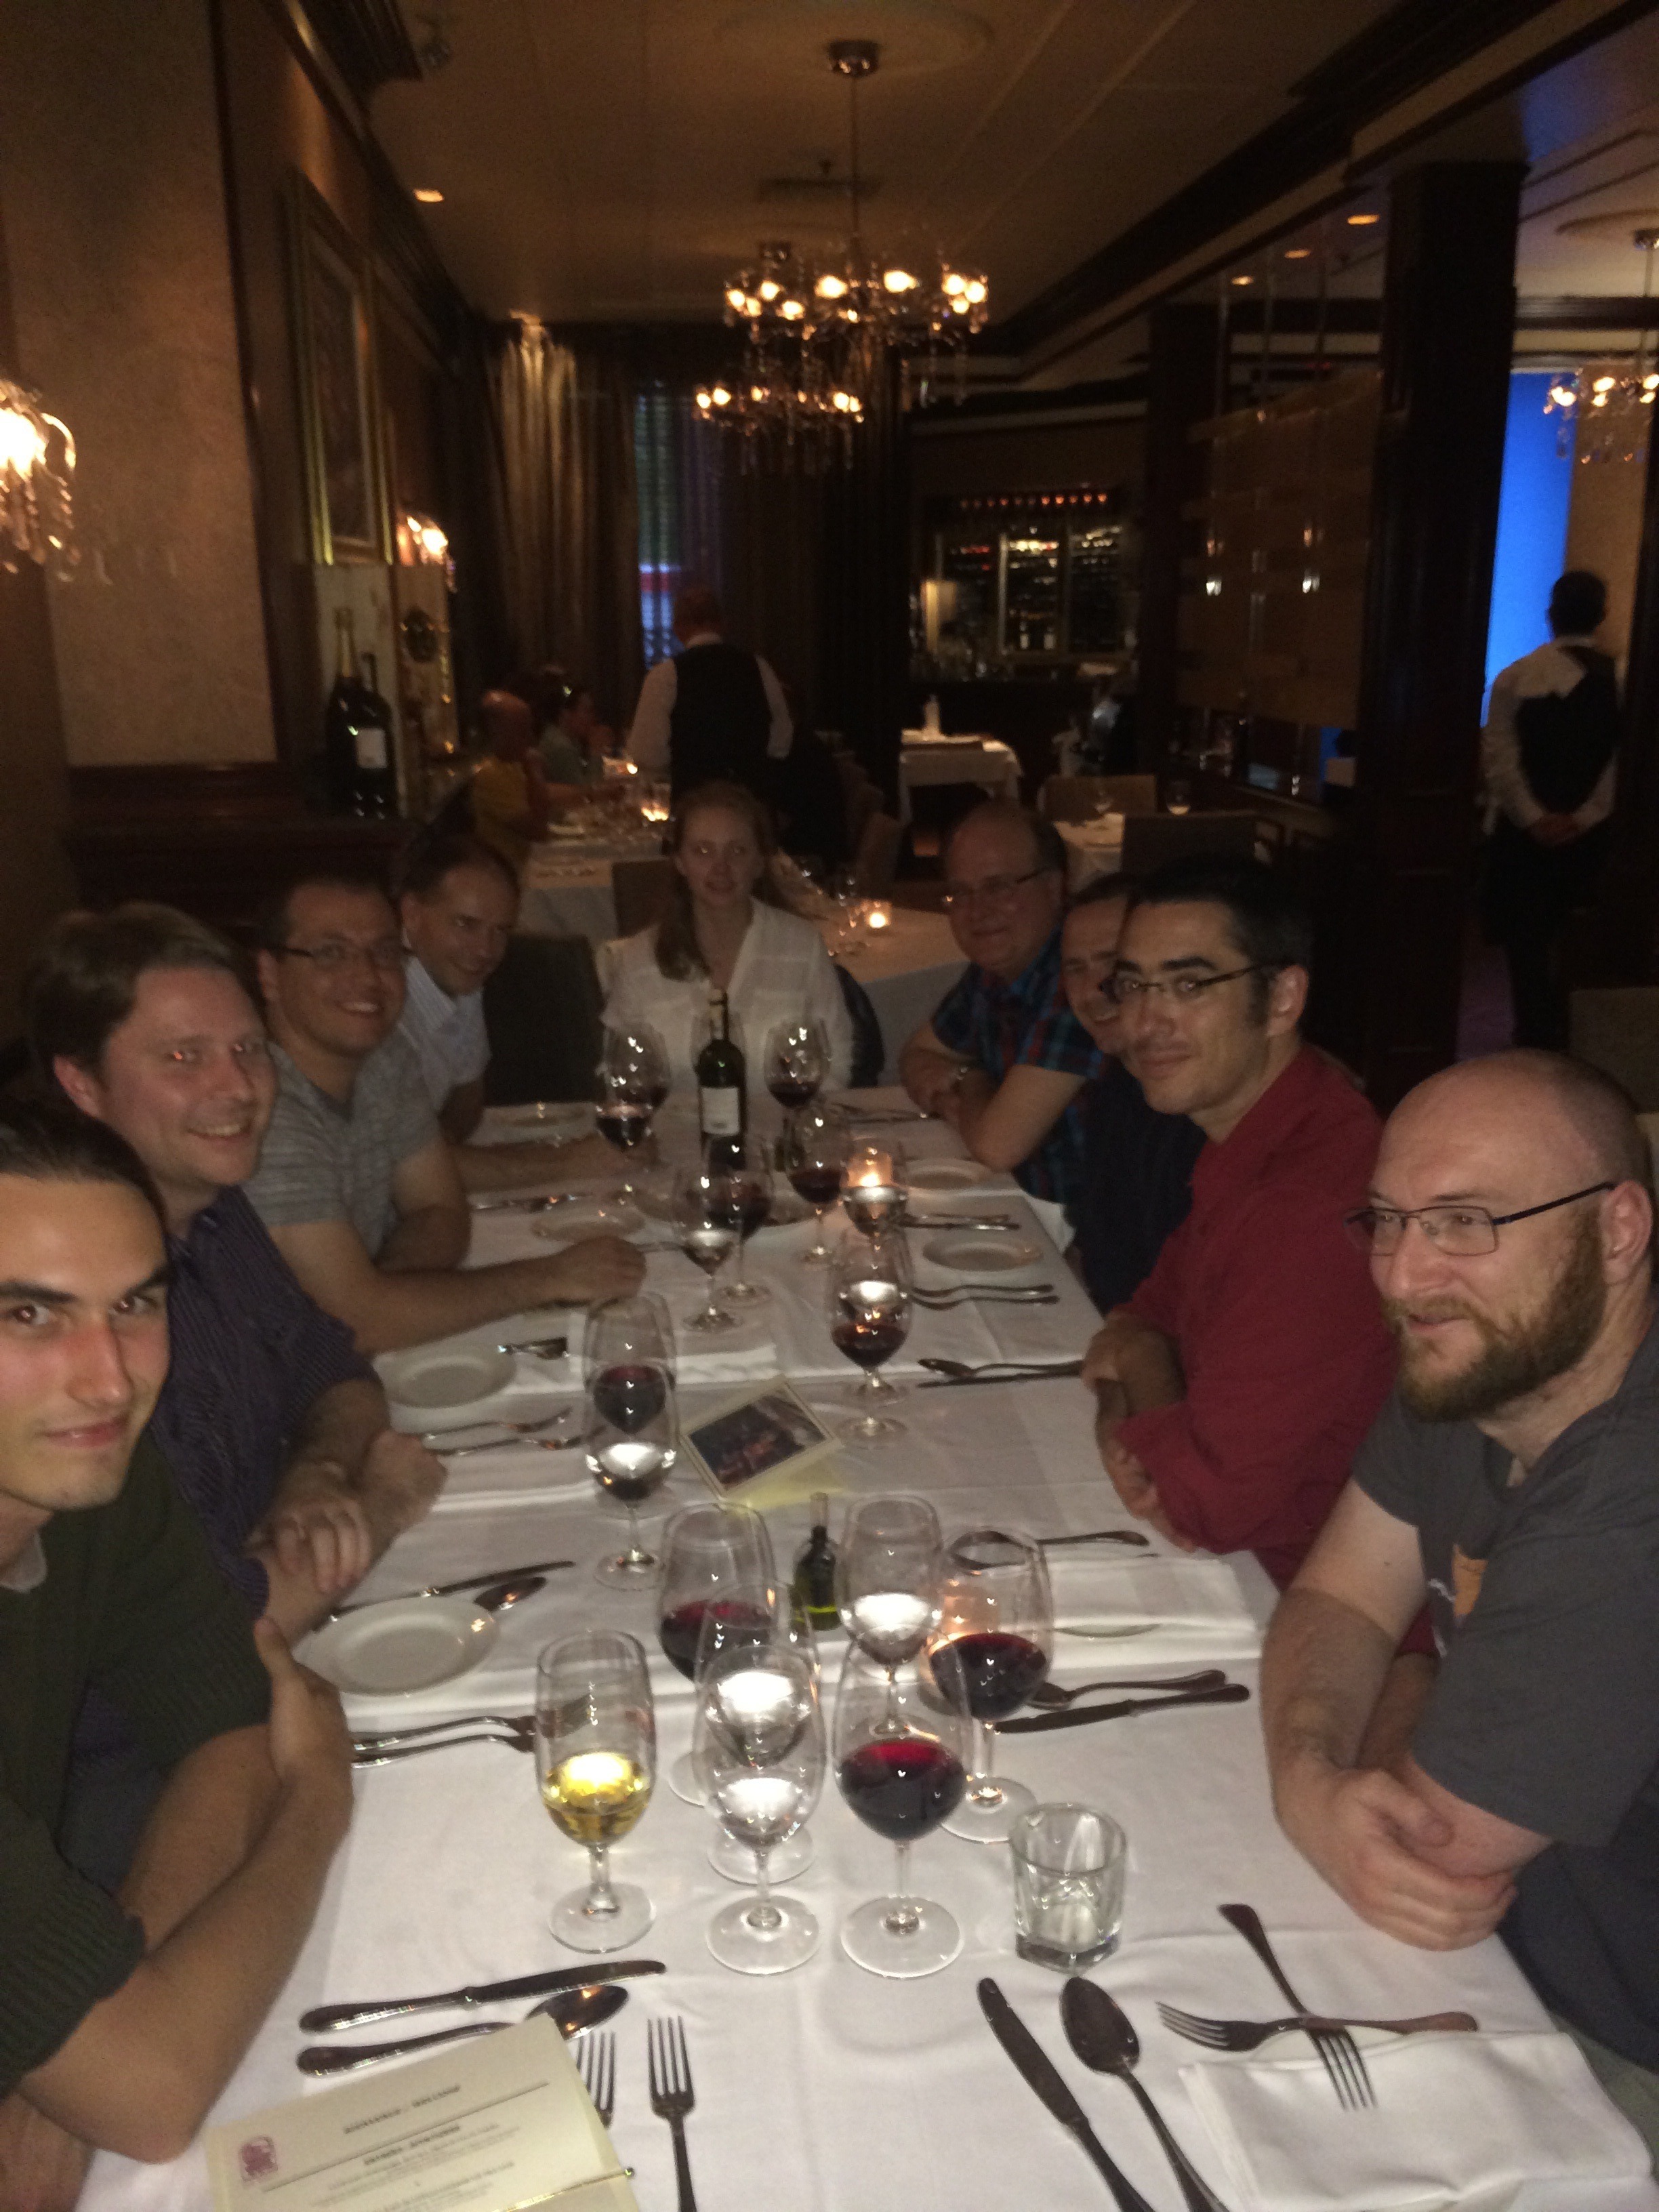 One of the GPI dinner tables: Zack Draper, Christian Marois, Markus Hartung, Schuyler Wolff, Fredrik, Stephen Goodsell, Etienne Artigau